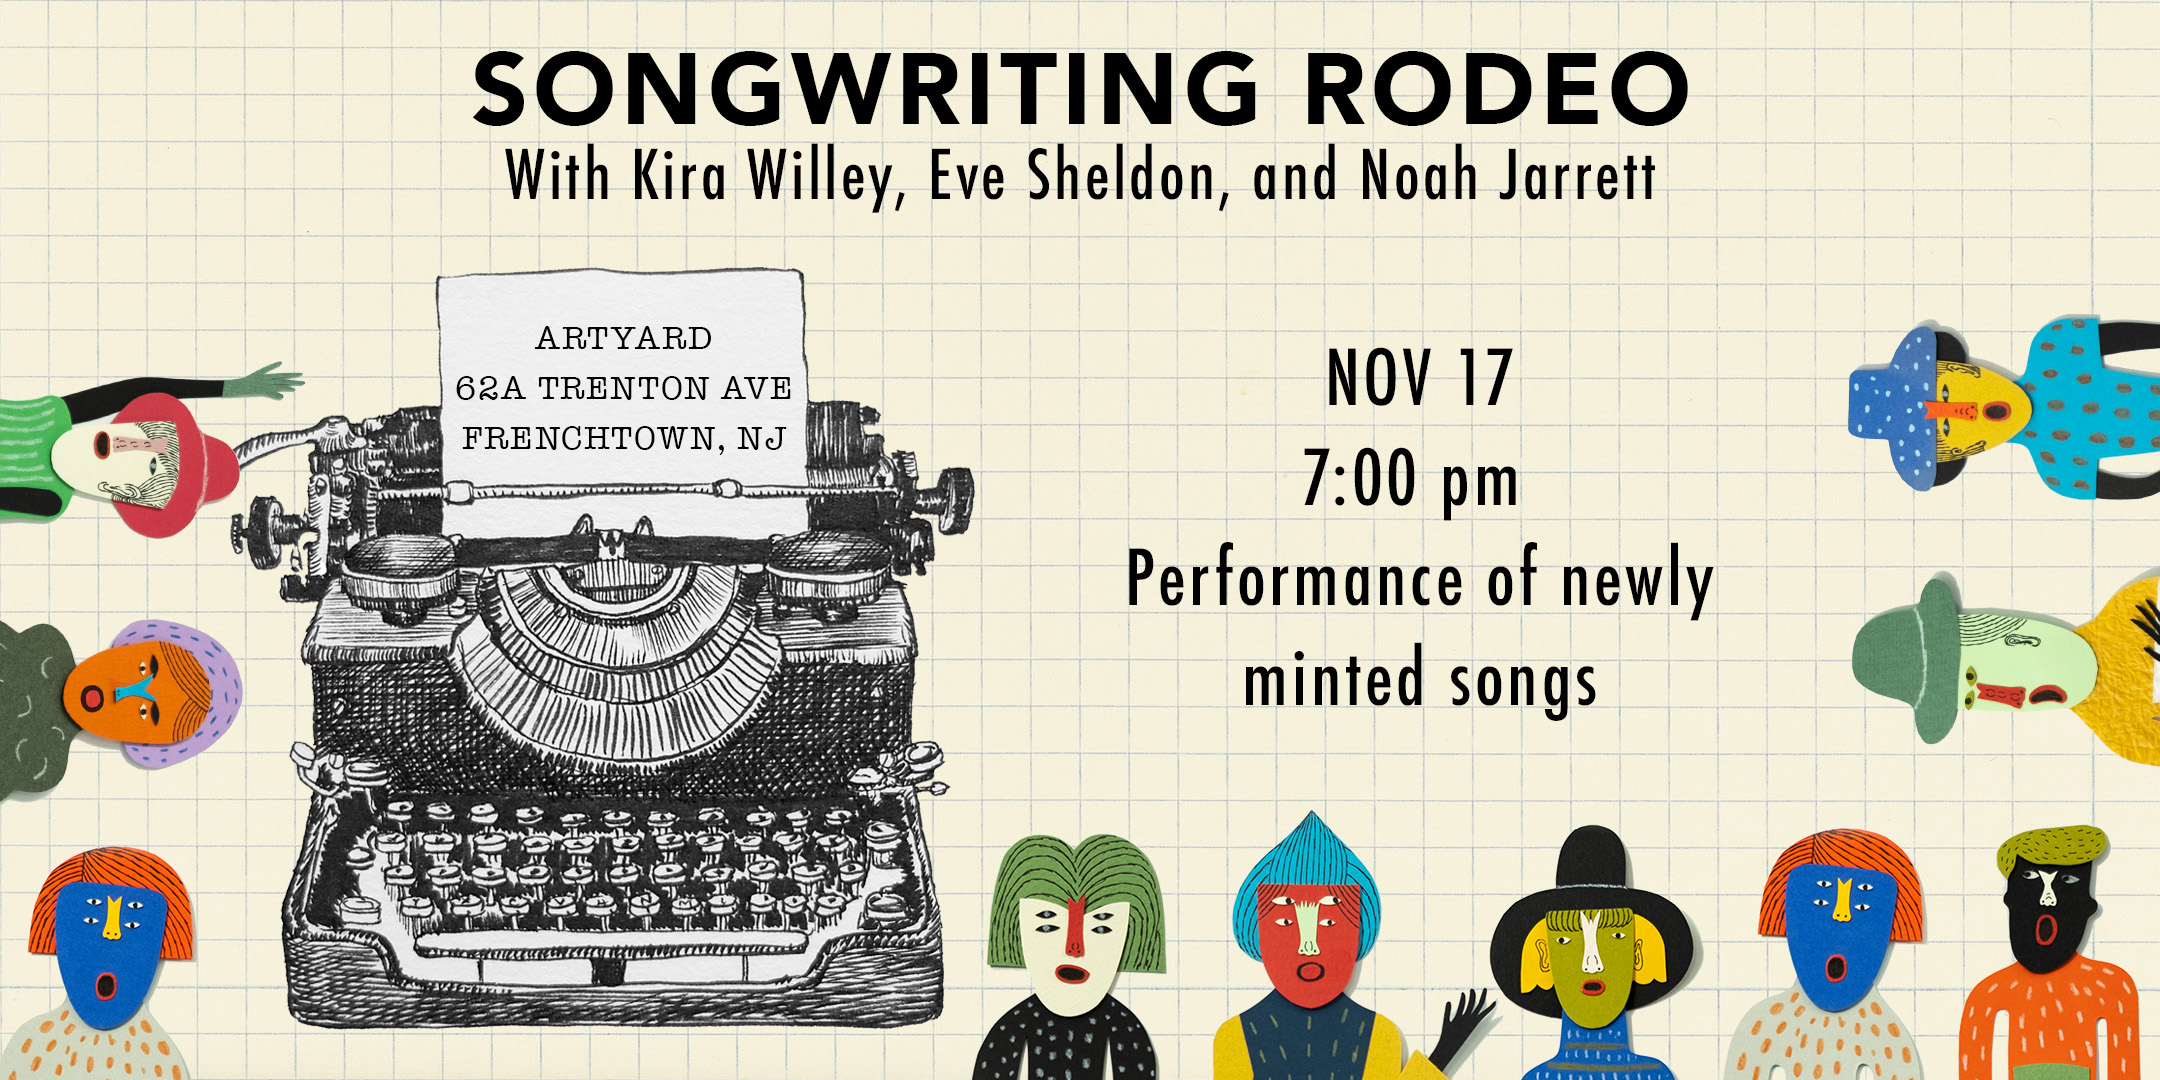 Songwritting Rodeo (PERFORMANCE OF NEWLY MINTED SONGS) @ ArtYard's Theater | Frenchtown | New Jersey | United States